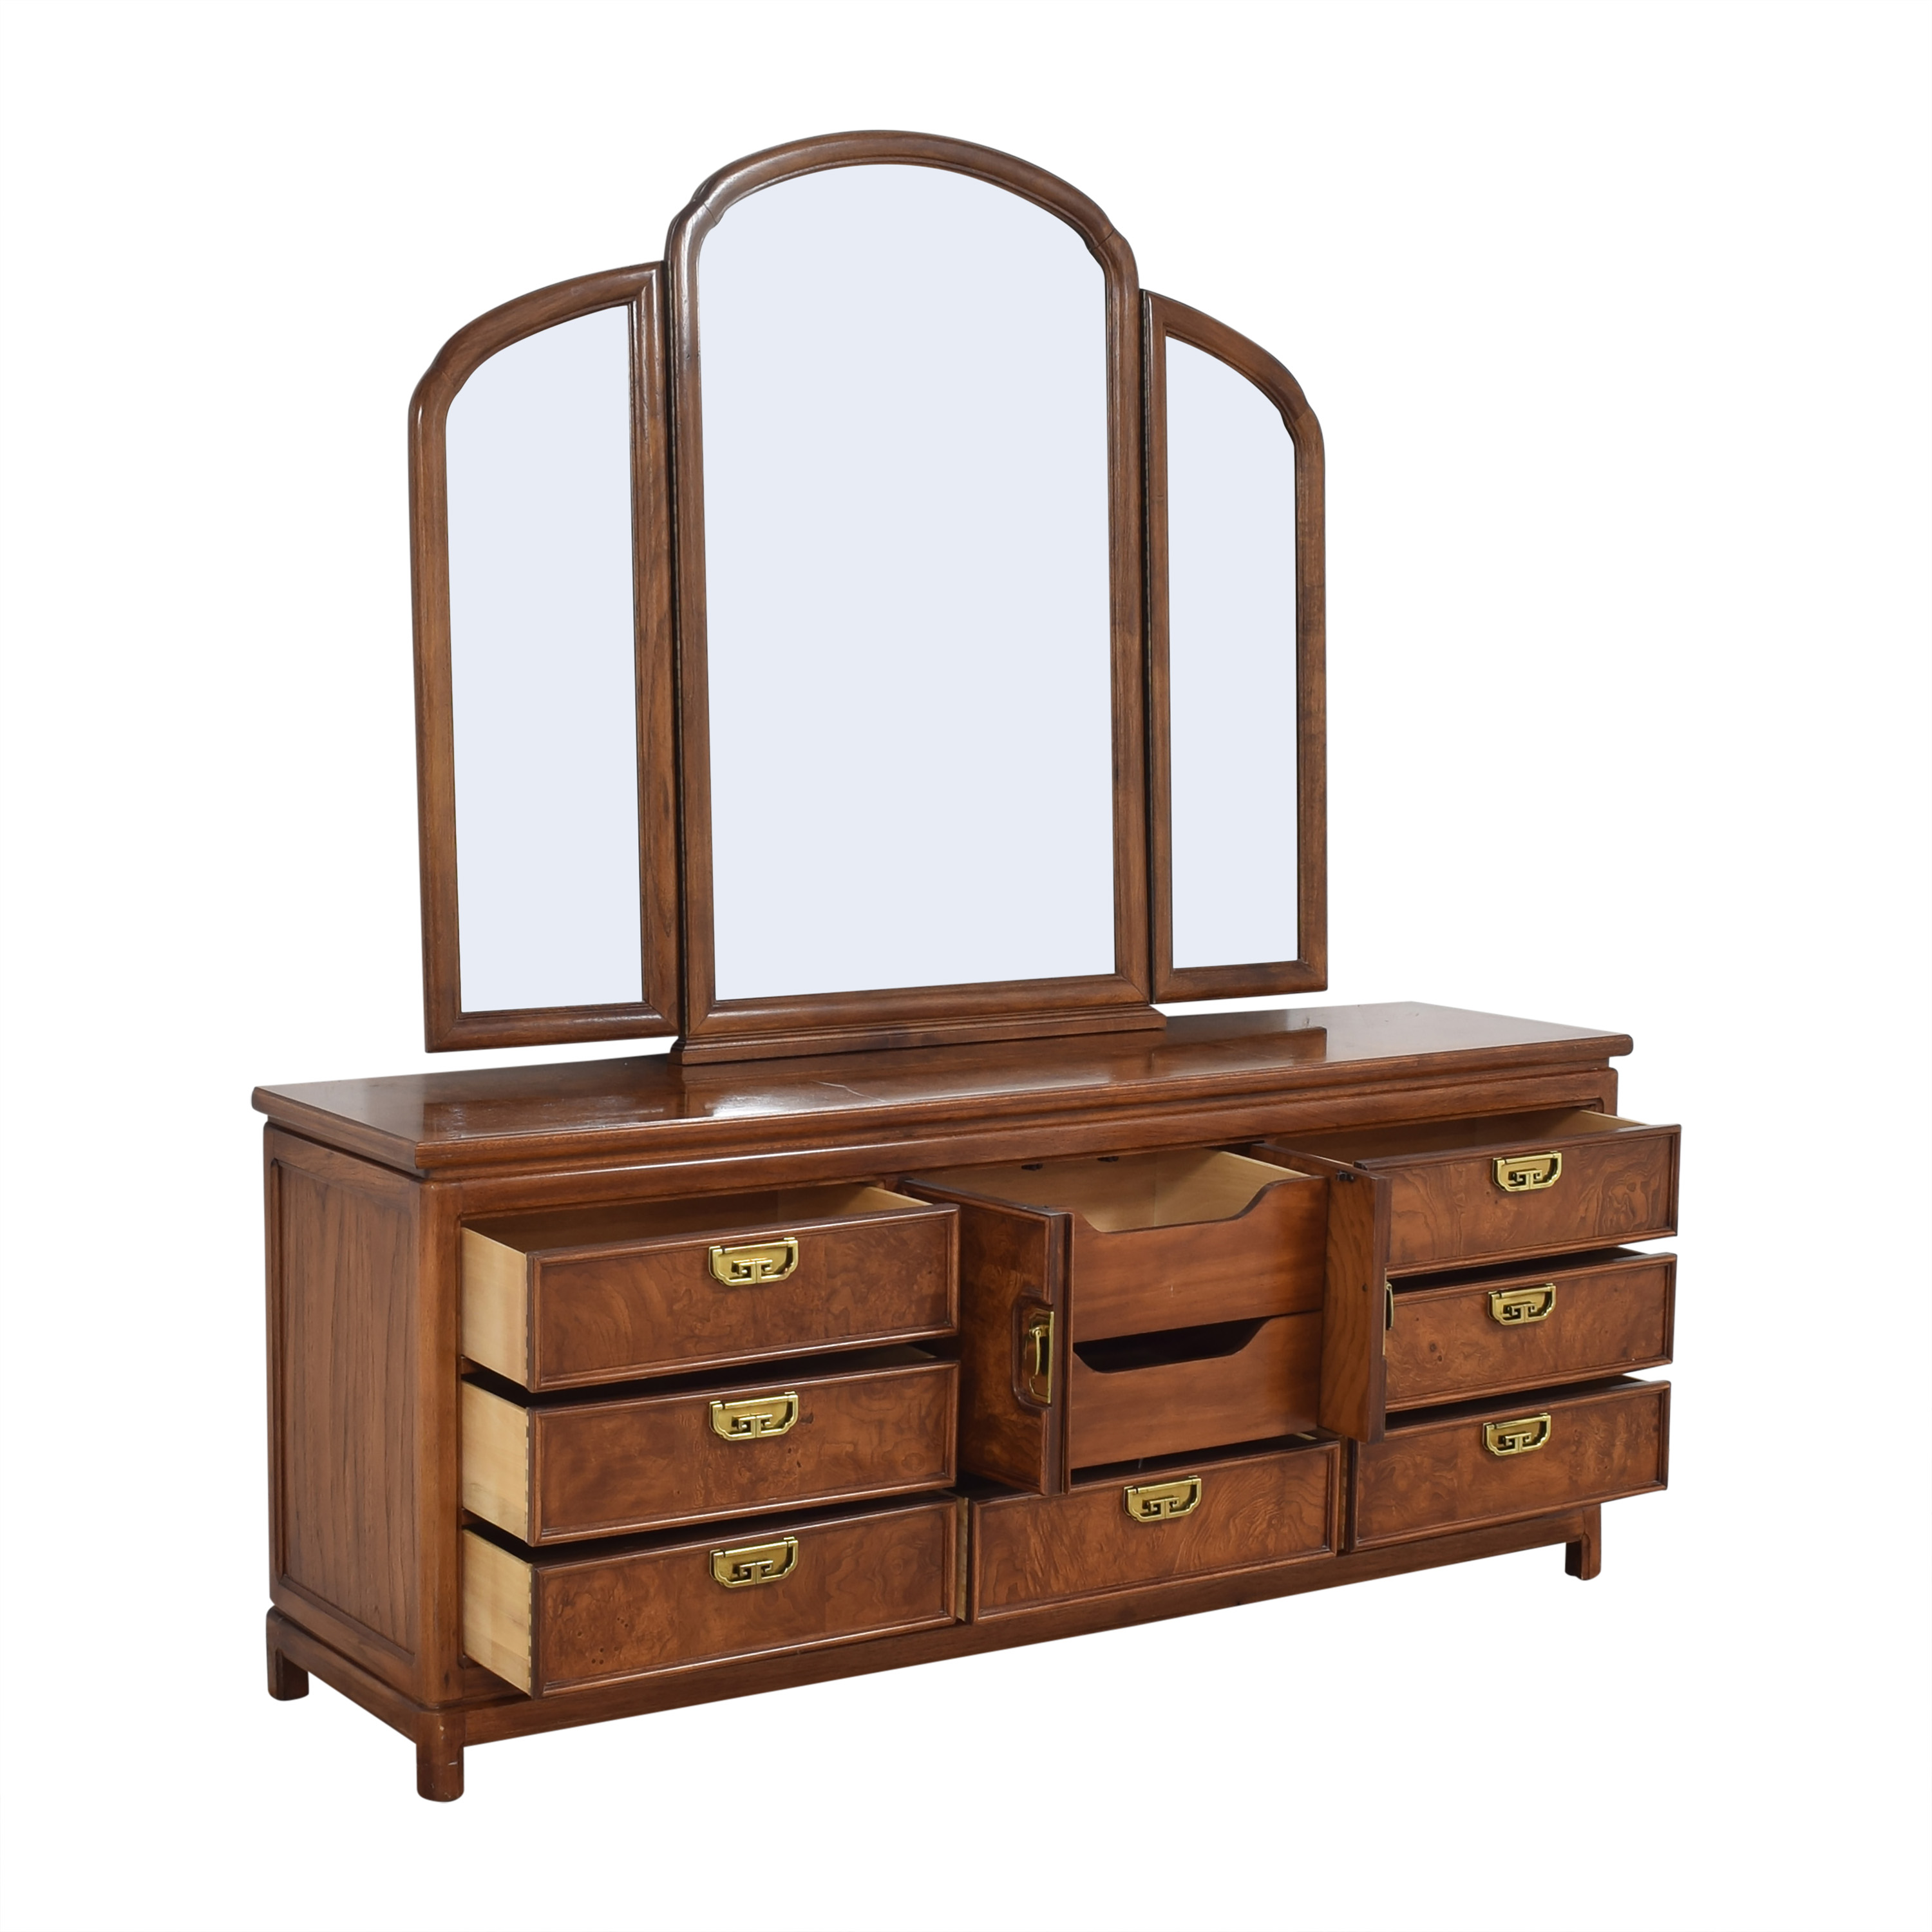 Thomasville Thomasville Mystique Campaign Triple Dresser with Mirror Storage